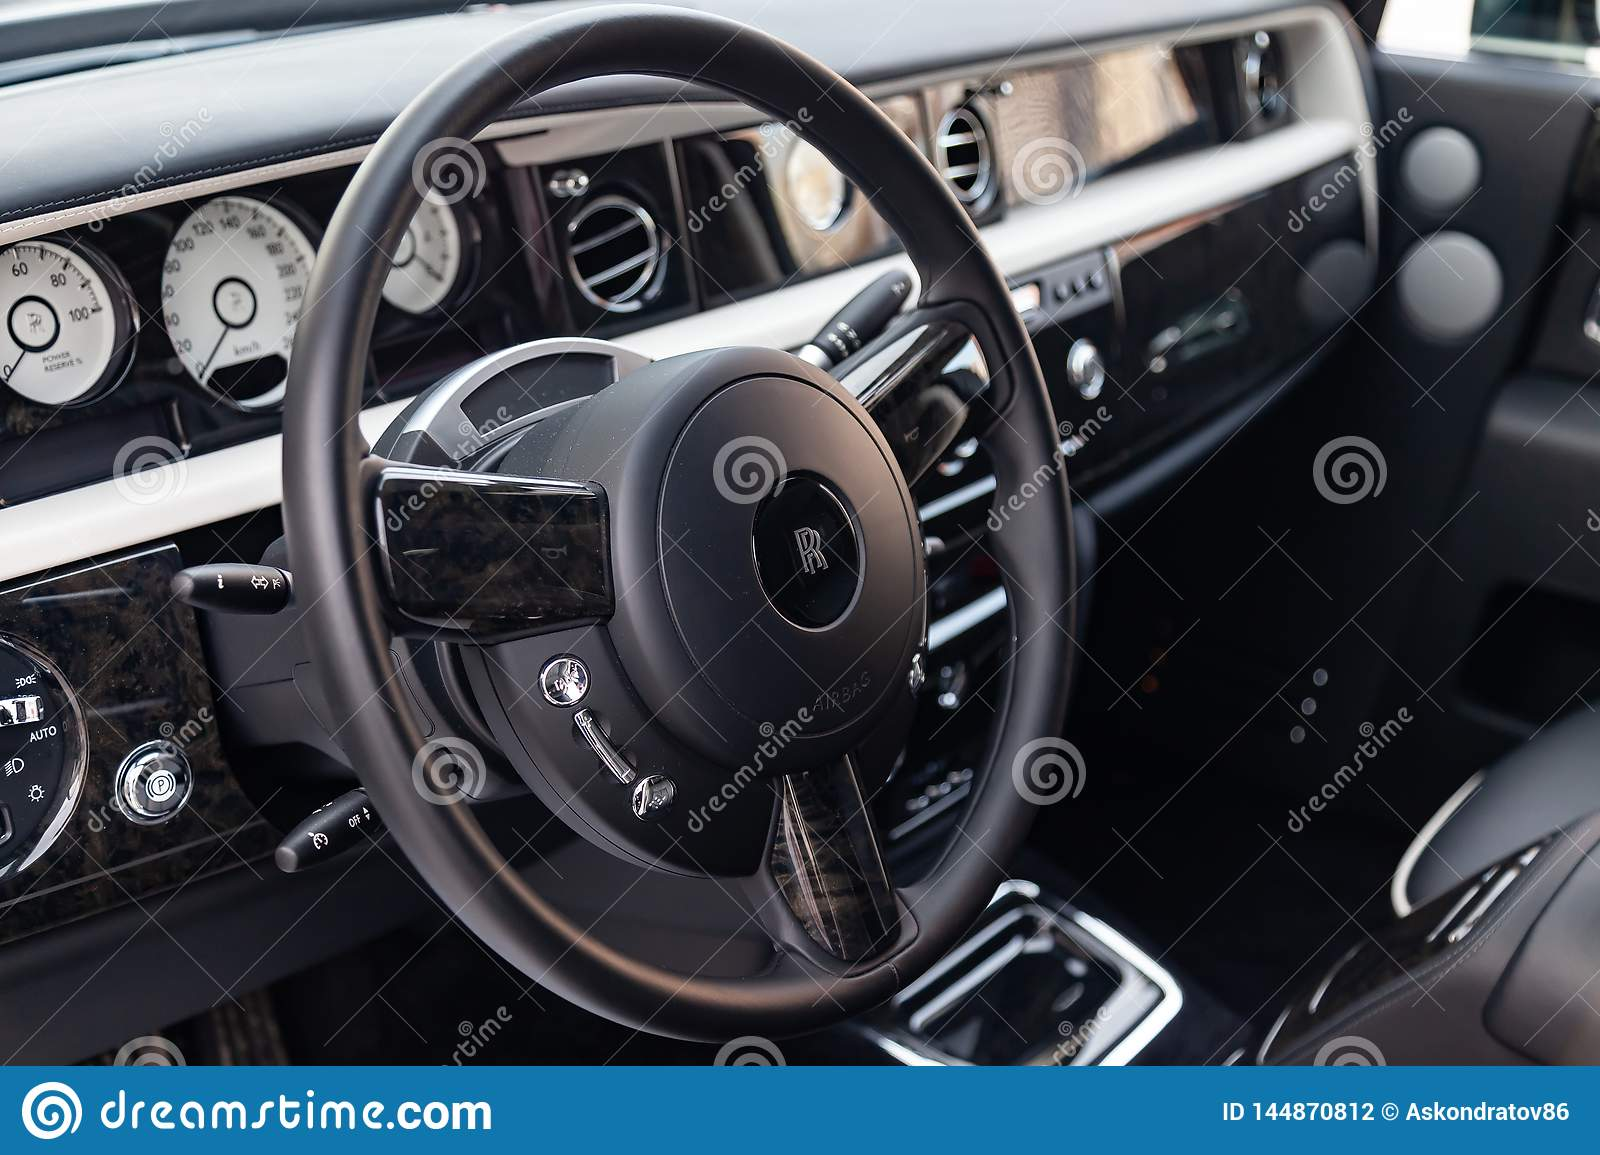 Interior View Of New A Very Expensive Rolls Royce Phantom Car A Long Black Limousine With Dashboard Steering Wheel Seats On Editorial Photography Image Of Chrome Lifestyle 144870812